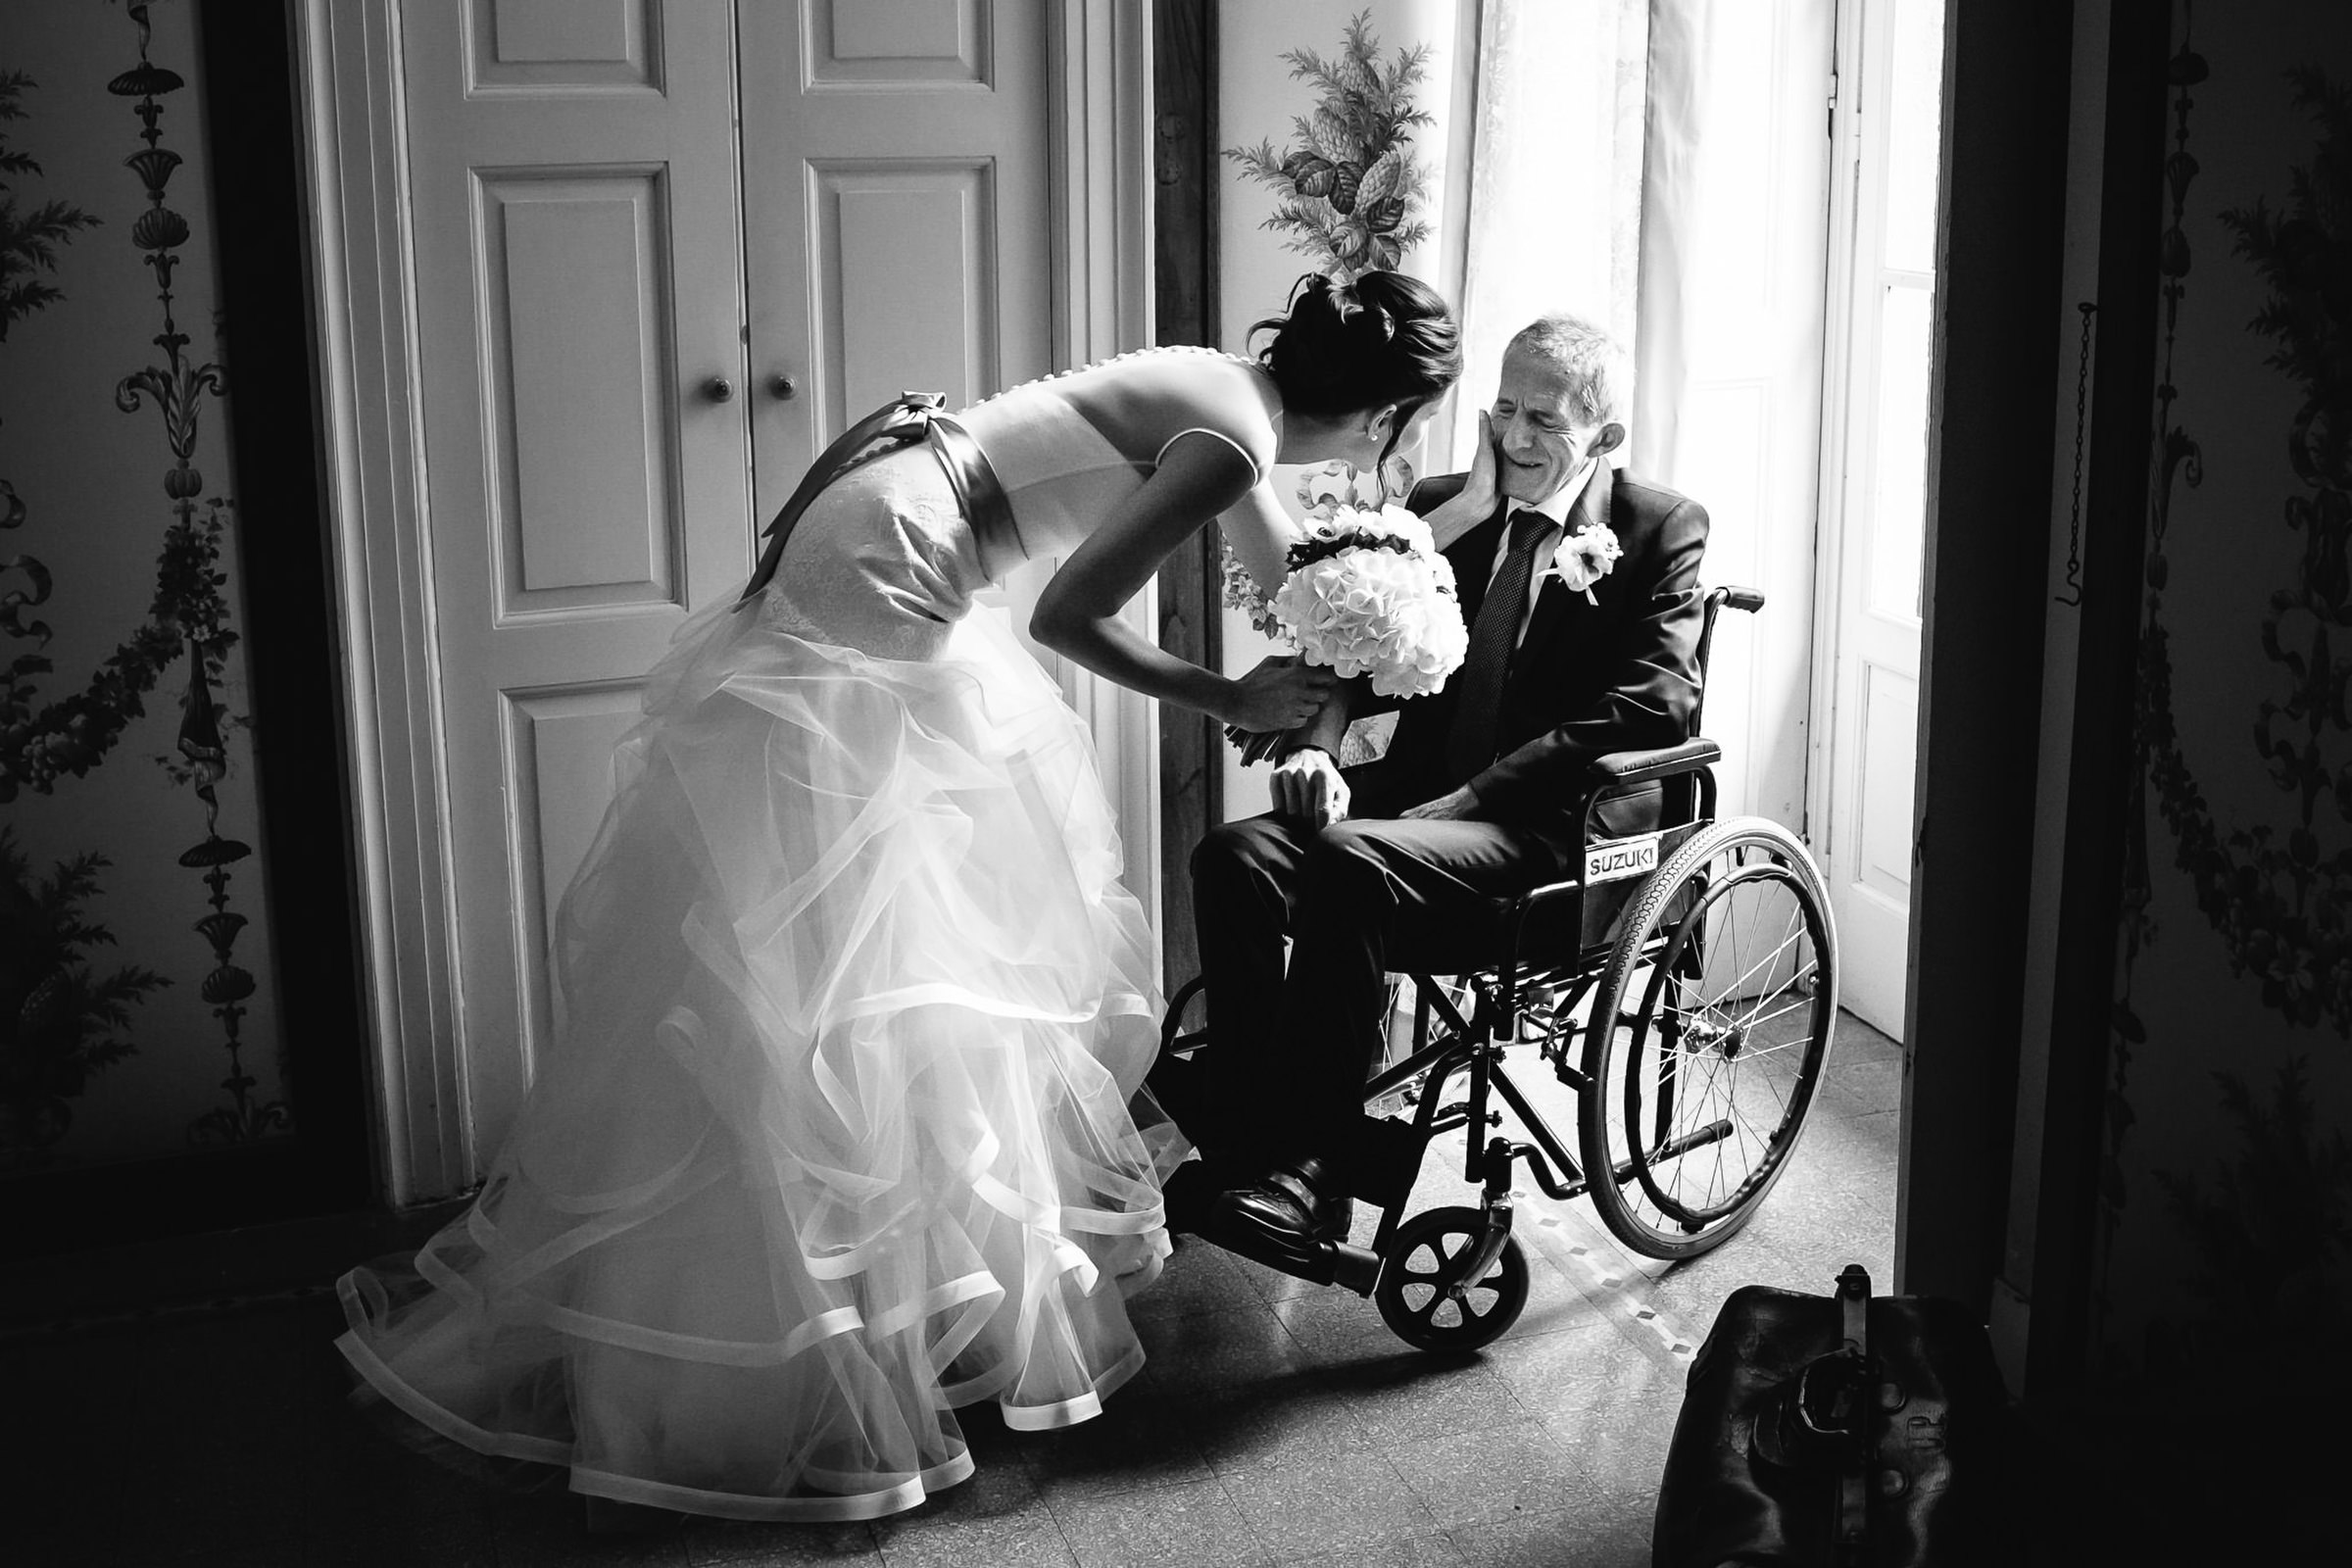 Bride bends down to touch her grandfather's face - Julian Kanz - Italy